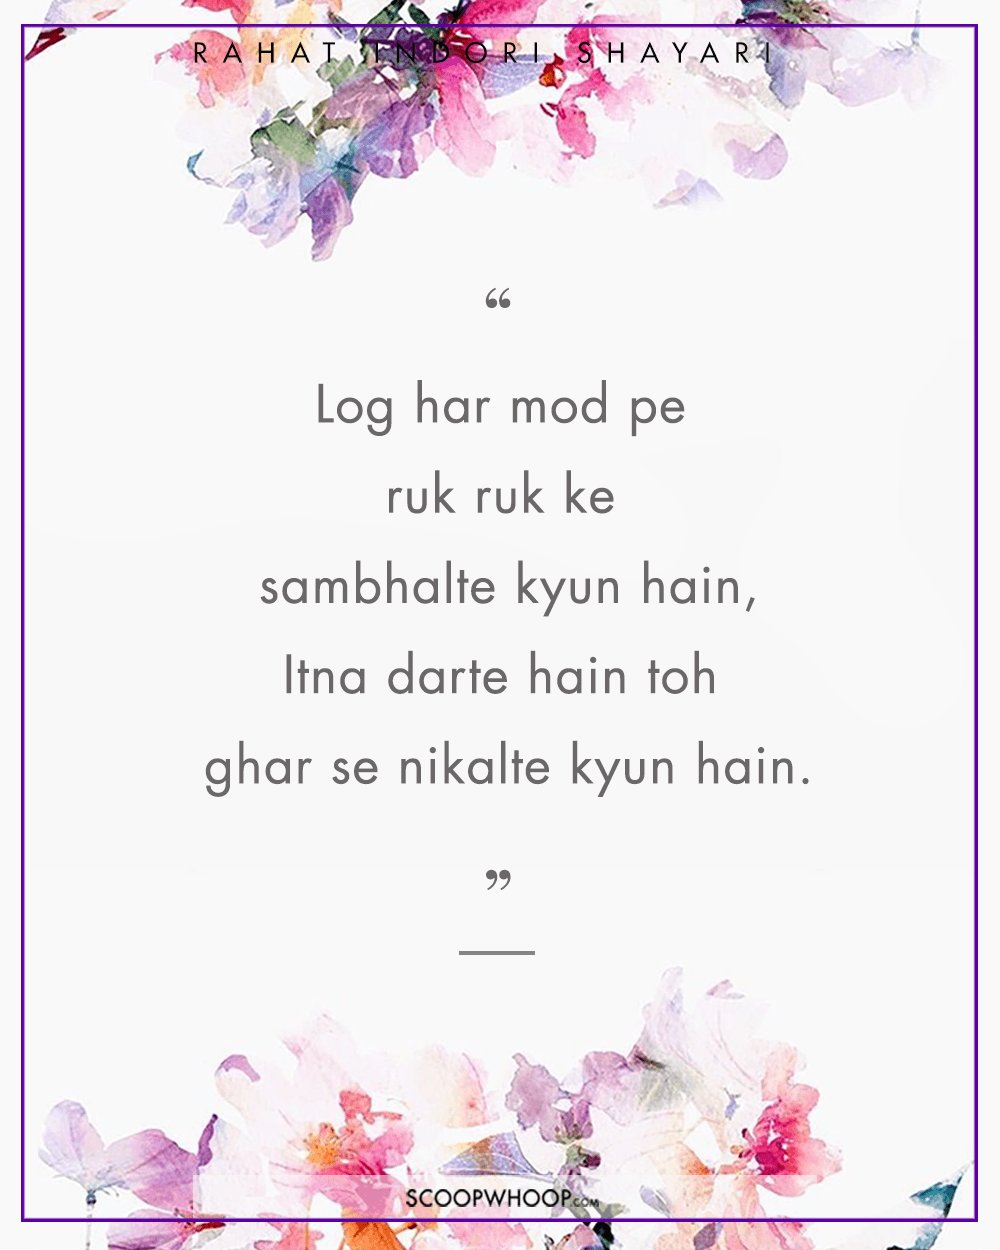 21 Rahat Indori Shayaris For The Times When You Could Do With Some